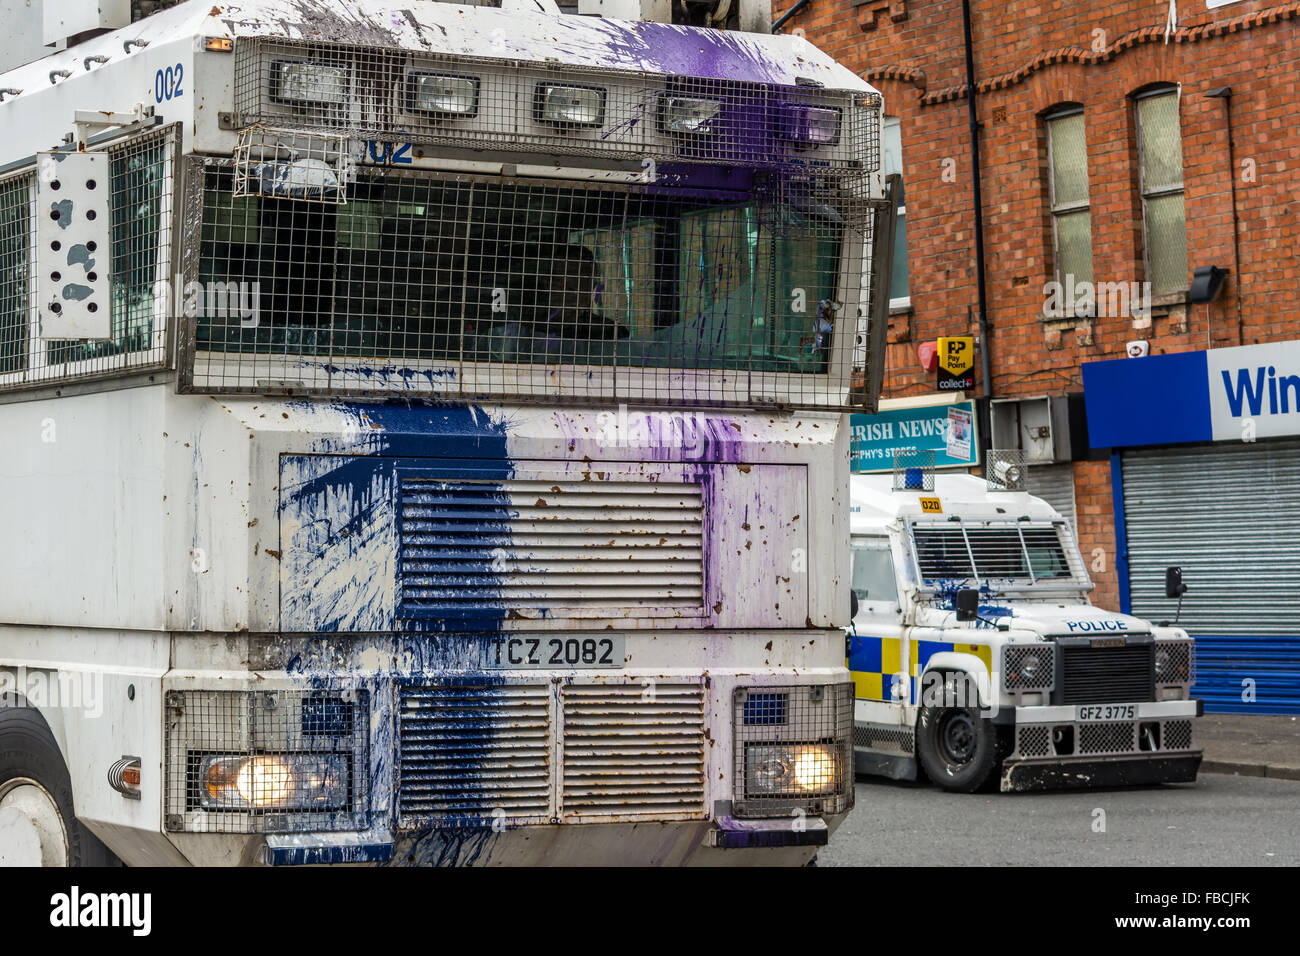 PSNI water cannon vehicle attacked by Irish Republican rioters with paint bombs in Belfast. - Stock Image